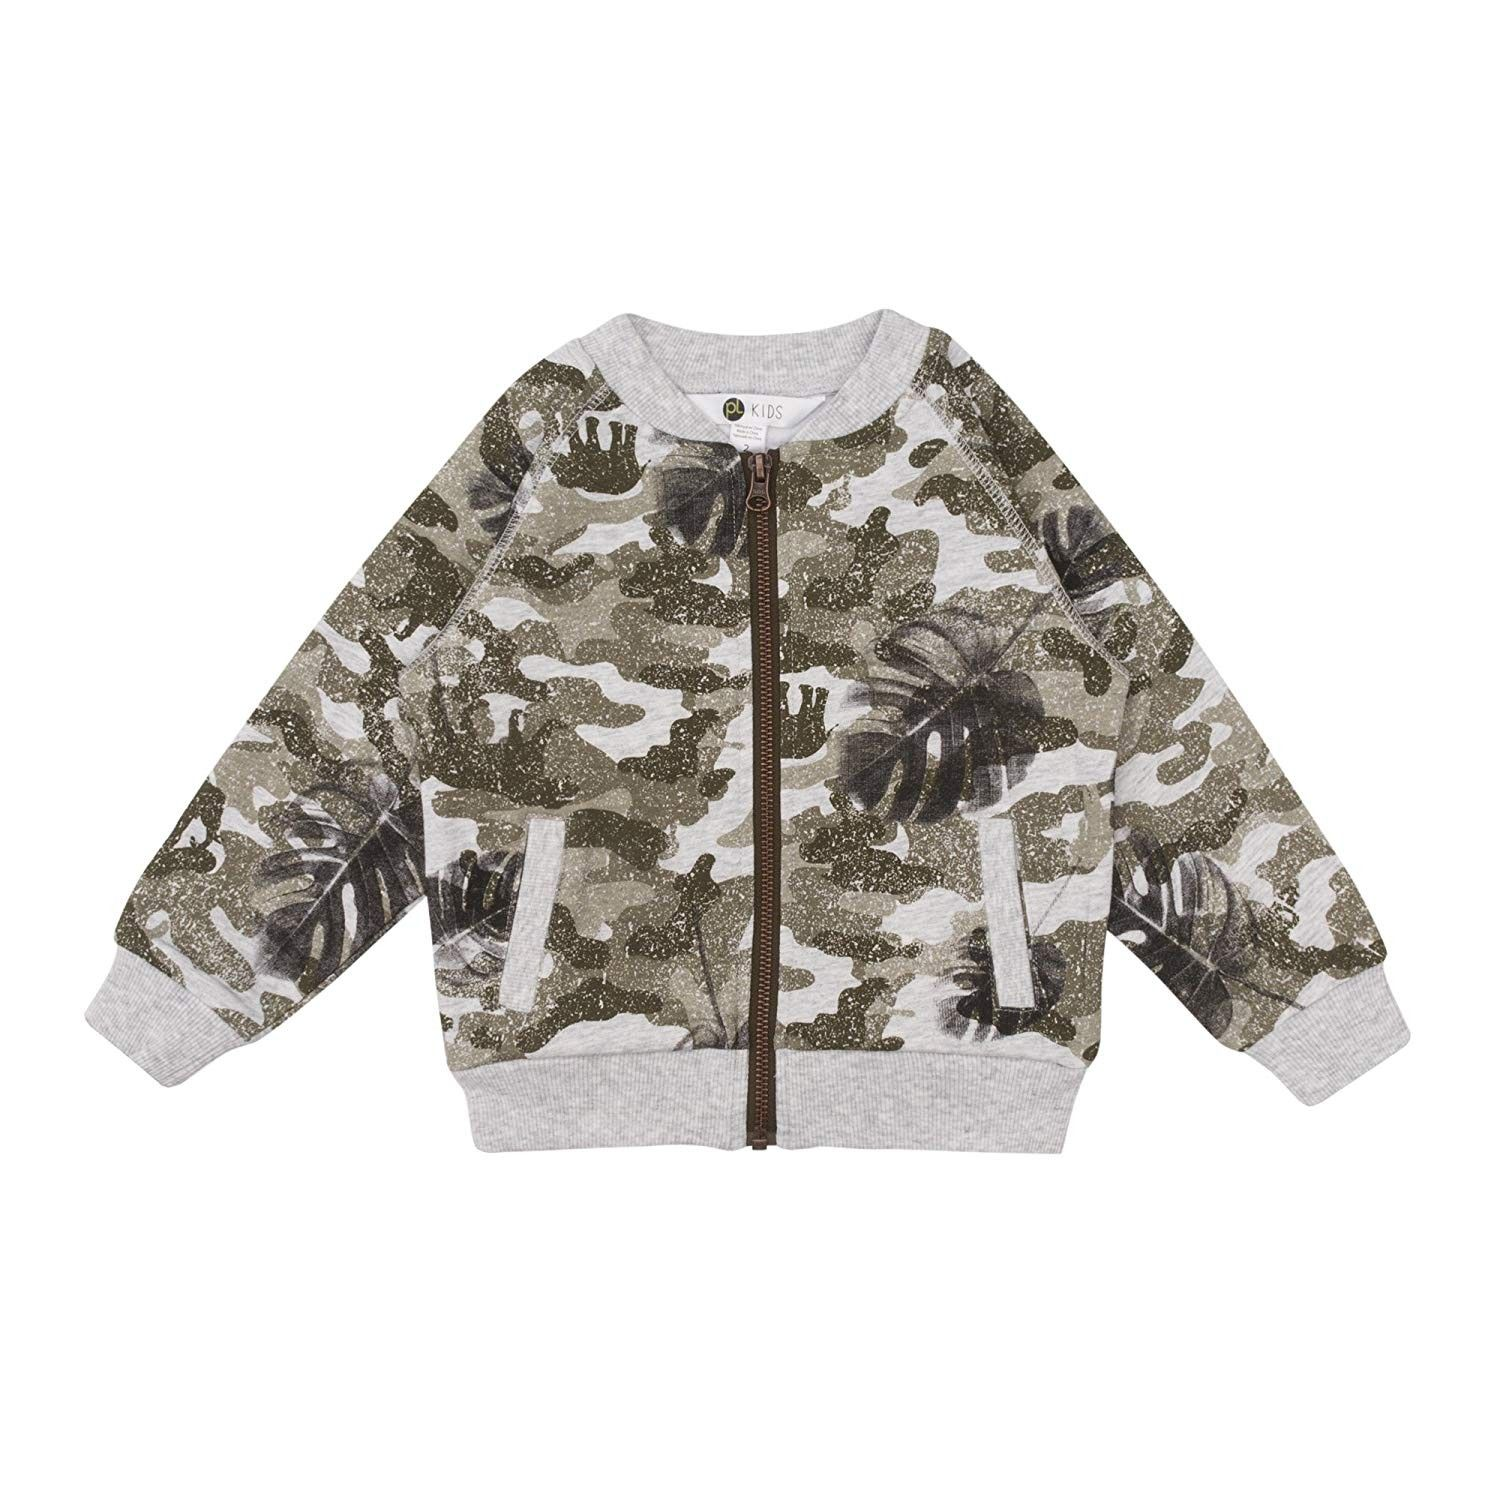 Jacket Top For Boys Comfortable And Stylish Khaki Cc18cat5sdo Kids Outdoor Clothes Long Winter Jacket Jacket Tops [ 1500 x 1500 Pixel ]